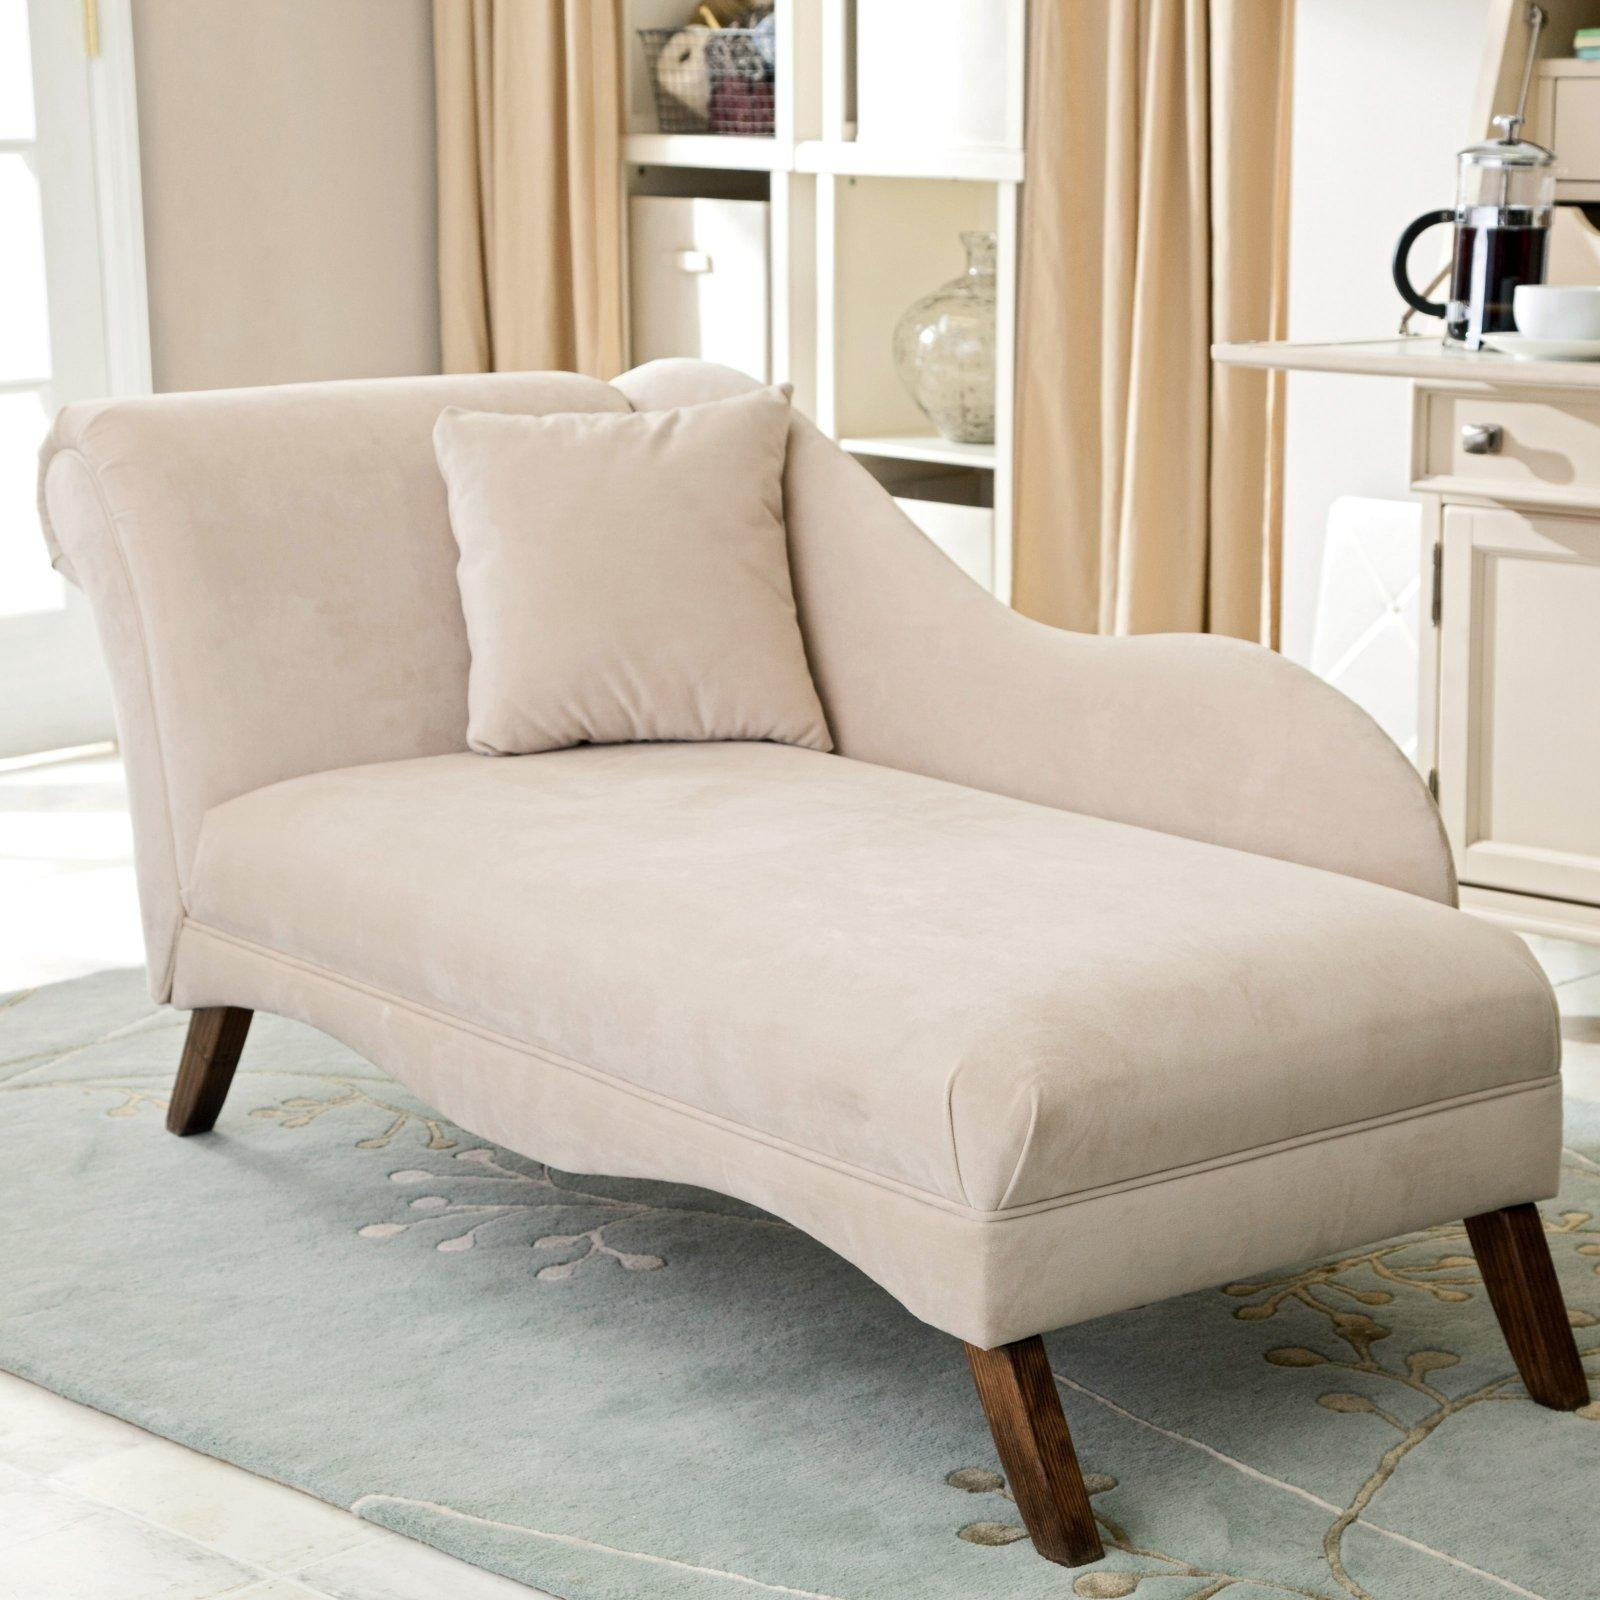 Bedroom : Amazing White Chaise Lounge Slipcover Chaise Lounge For With Slipcovers For Chaise Lounge Sofas (Image 1 of 20)